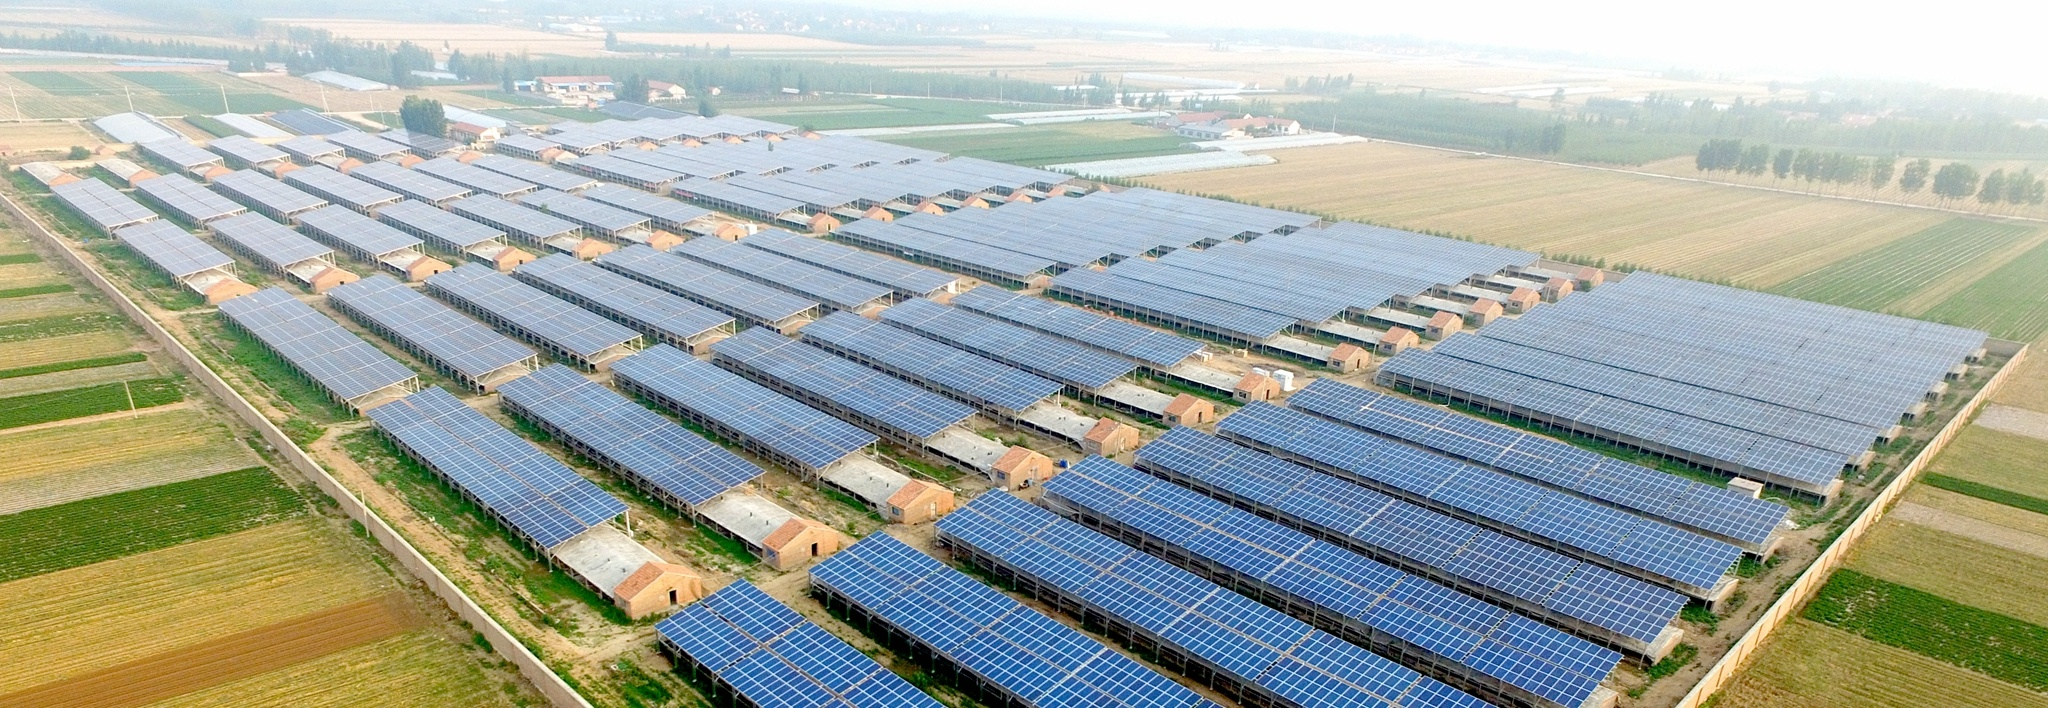 Clenergy Ground-mount 40MW Agrivoltaic Project in China